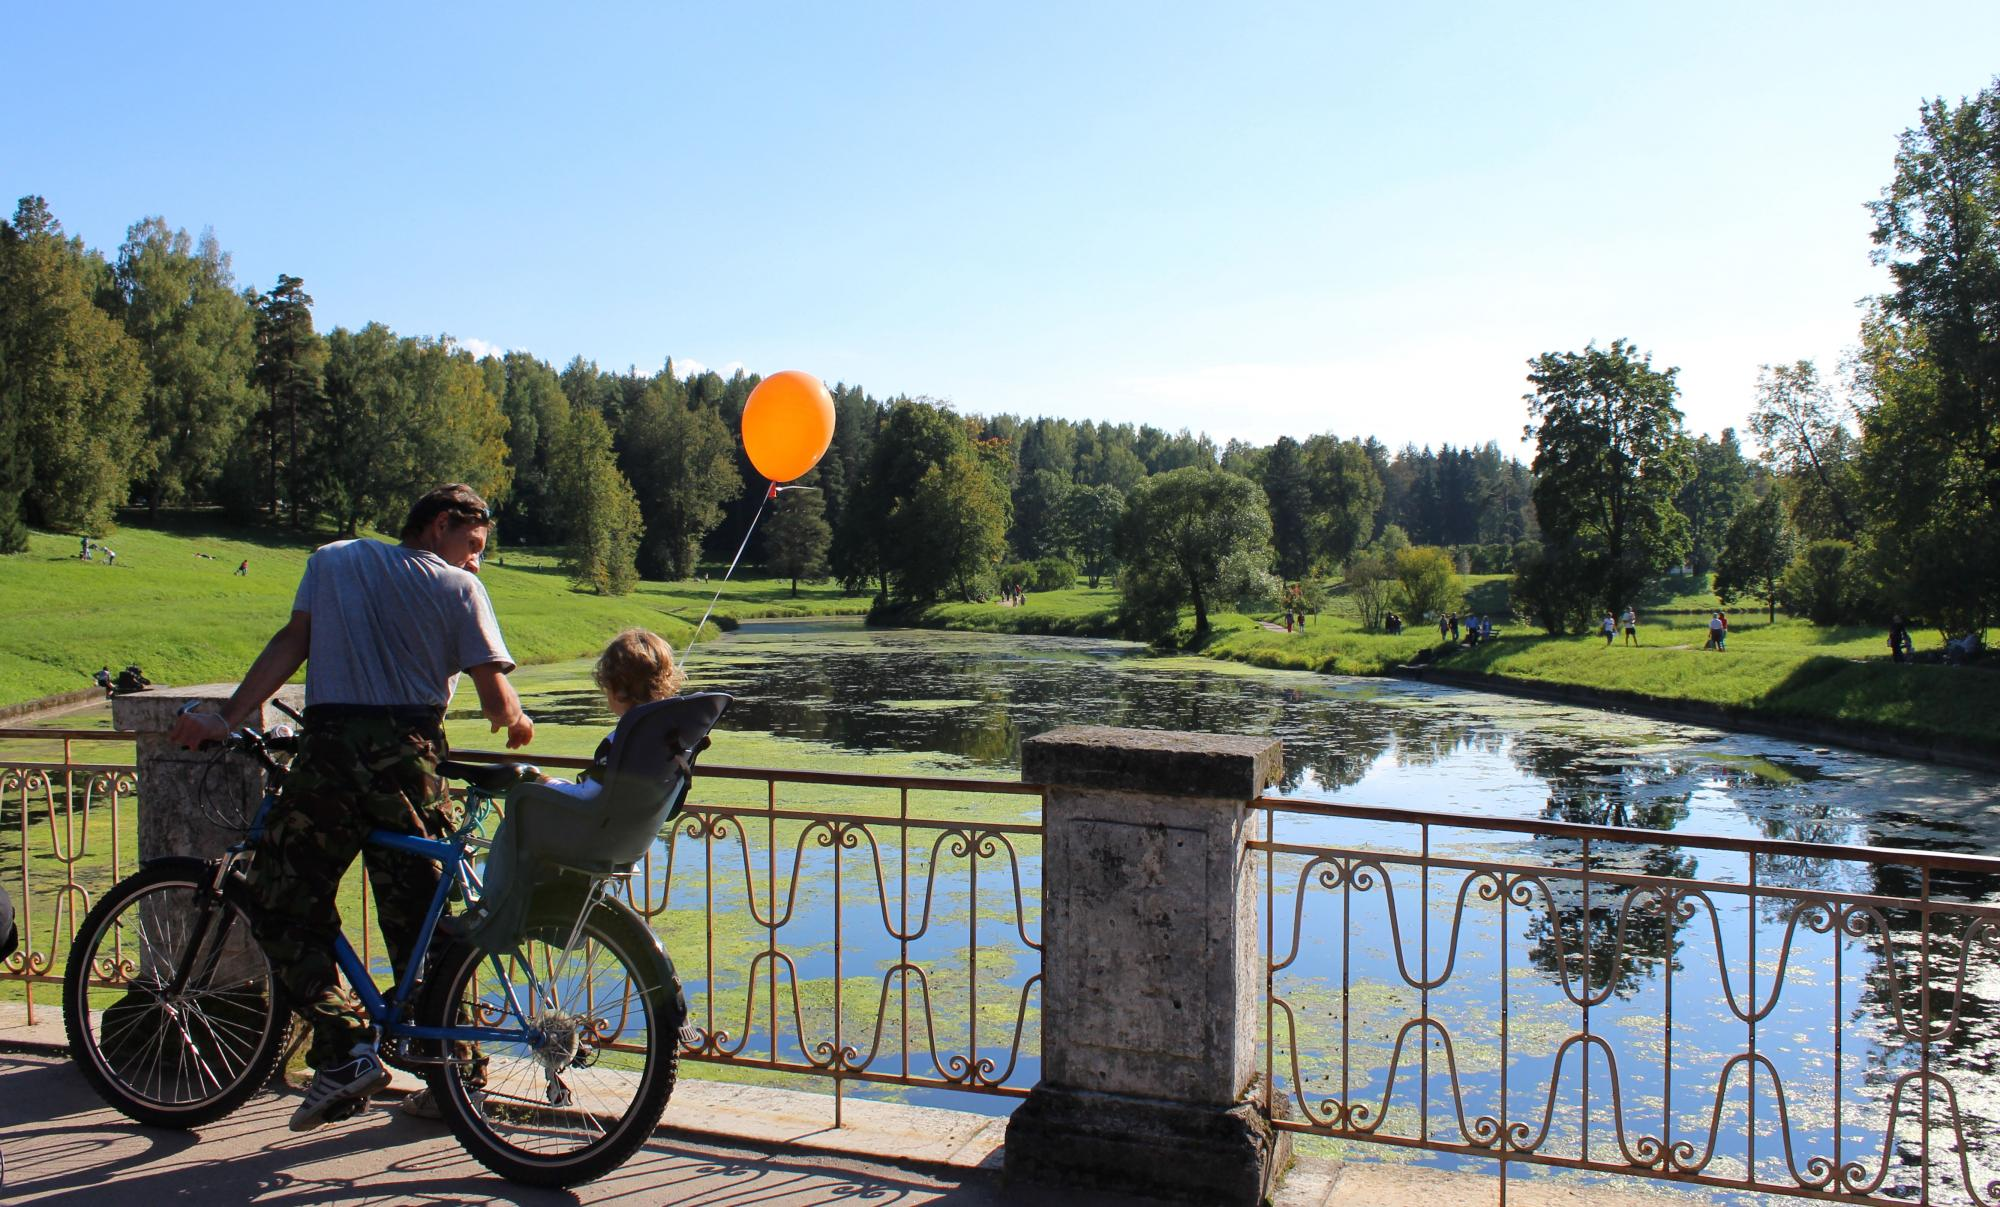 Man on bicycle with a child holding a balloon